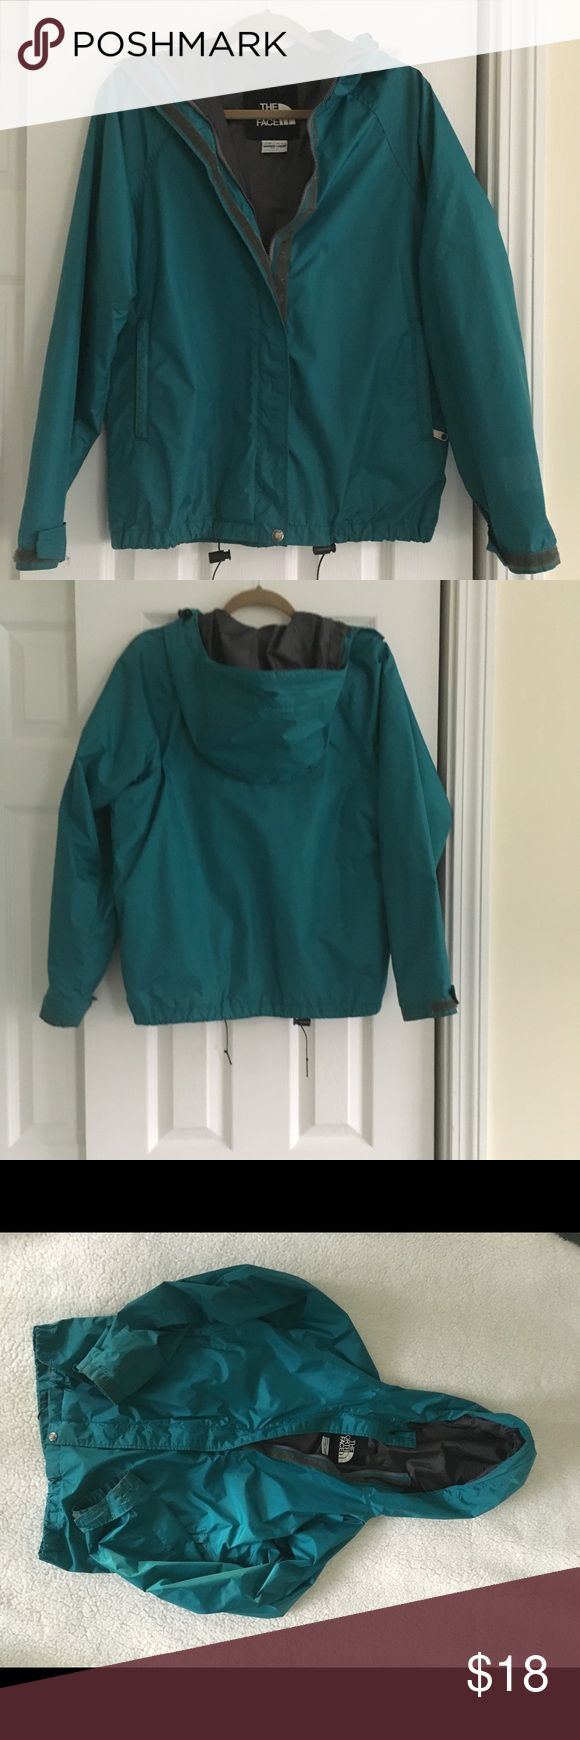 North Face WOMANS RAIN JACKET Woman's North Face rain jacket with hood. Front zip with Velcro closing. Adjustable Velcro close cuffs.  Great teal color with gray lining. The North Face Jackets & Coats